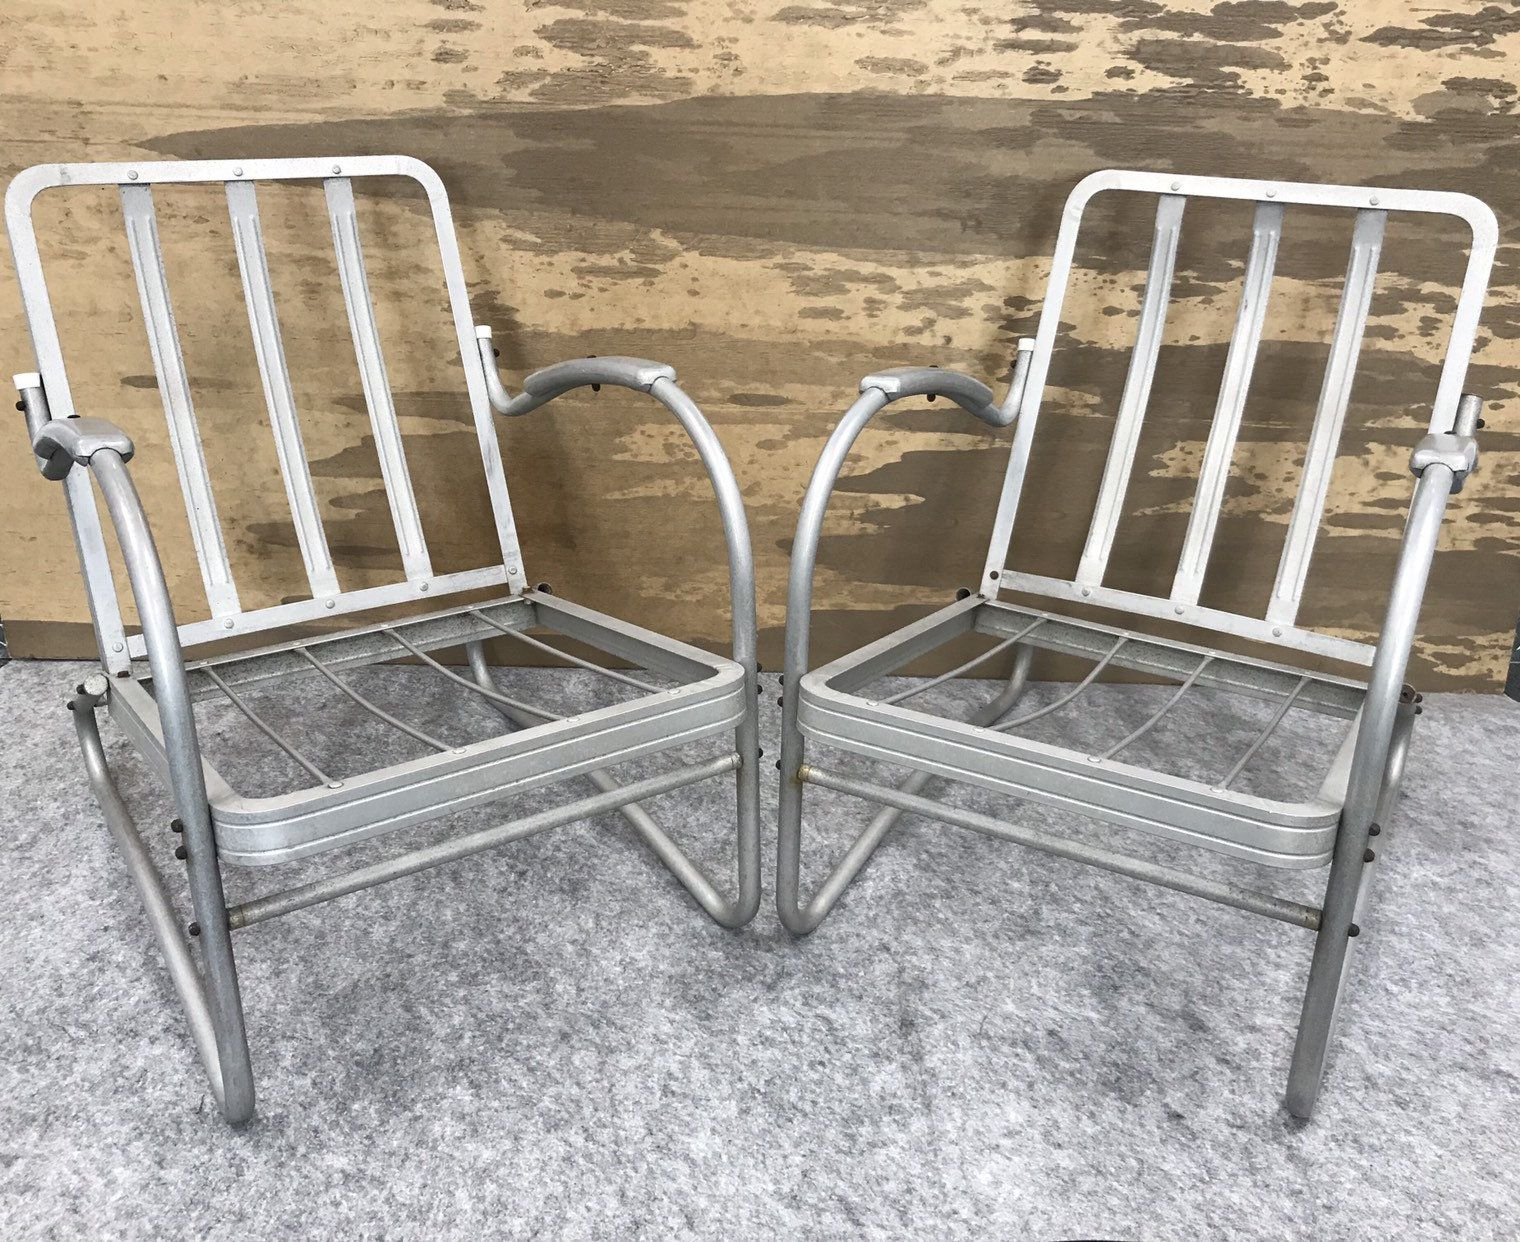 Vintage Jr Bunting Aluminum Outdoor Patio Chairs In 2020 Patio